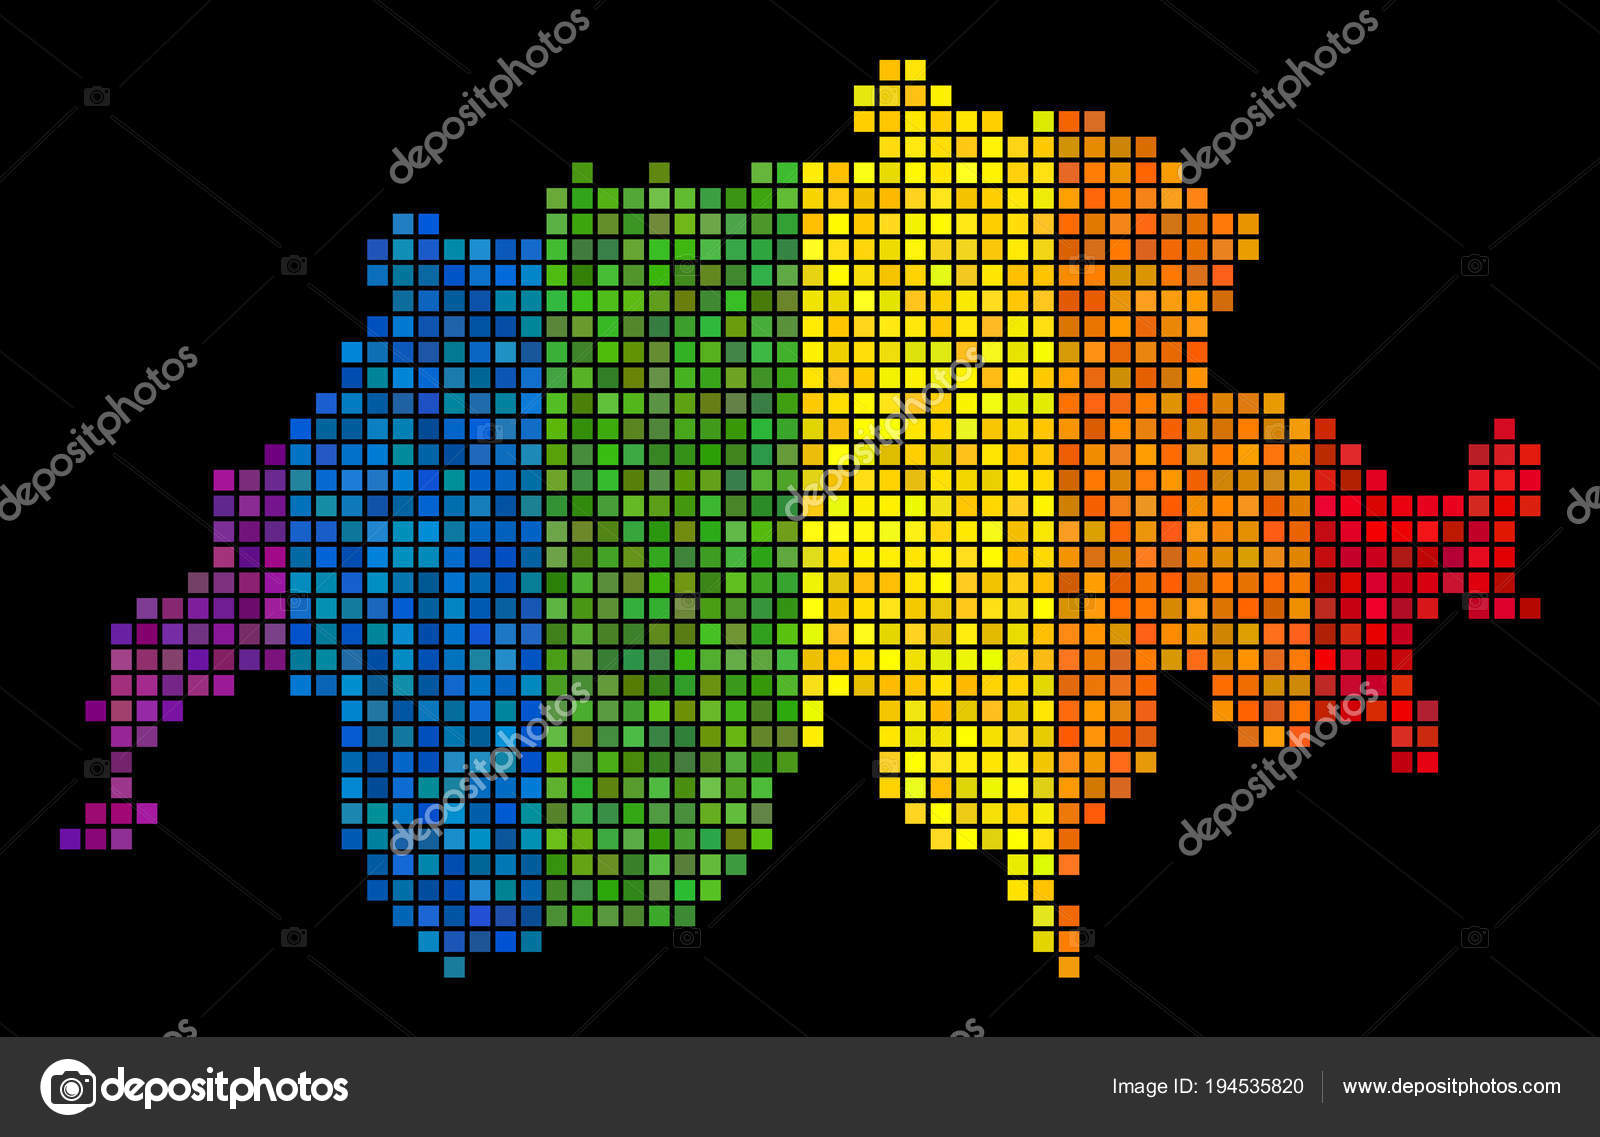 https://st3.depositphotos.com/5266903/19453/v/1600/depositphotos_194535820-stock-illustration-lgbt-pixel-swissland-map.jpg